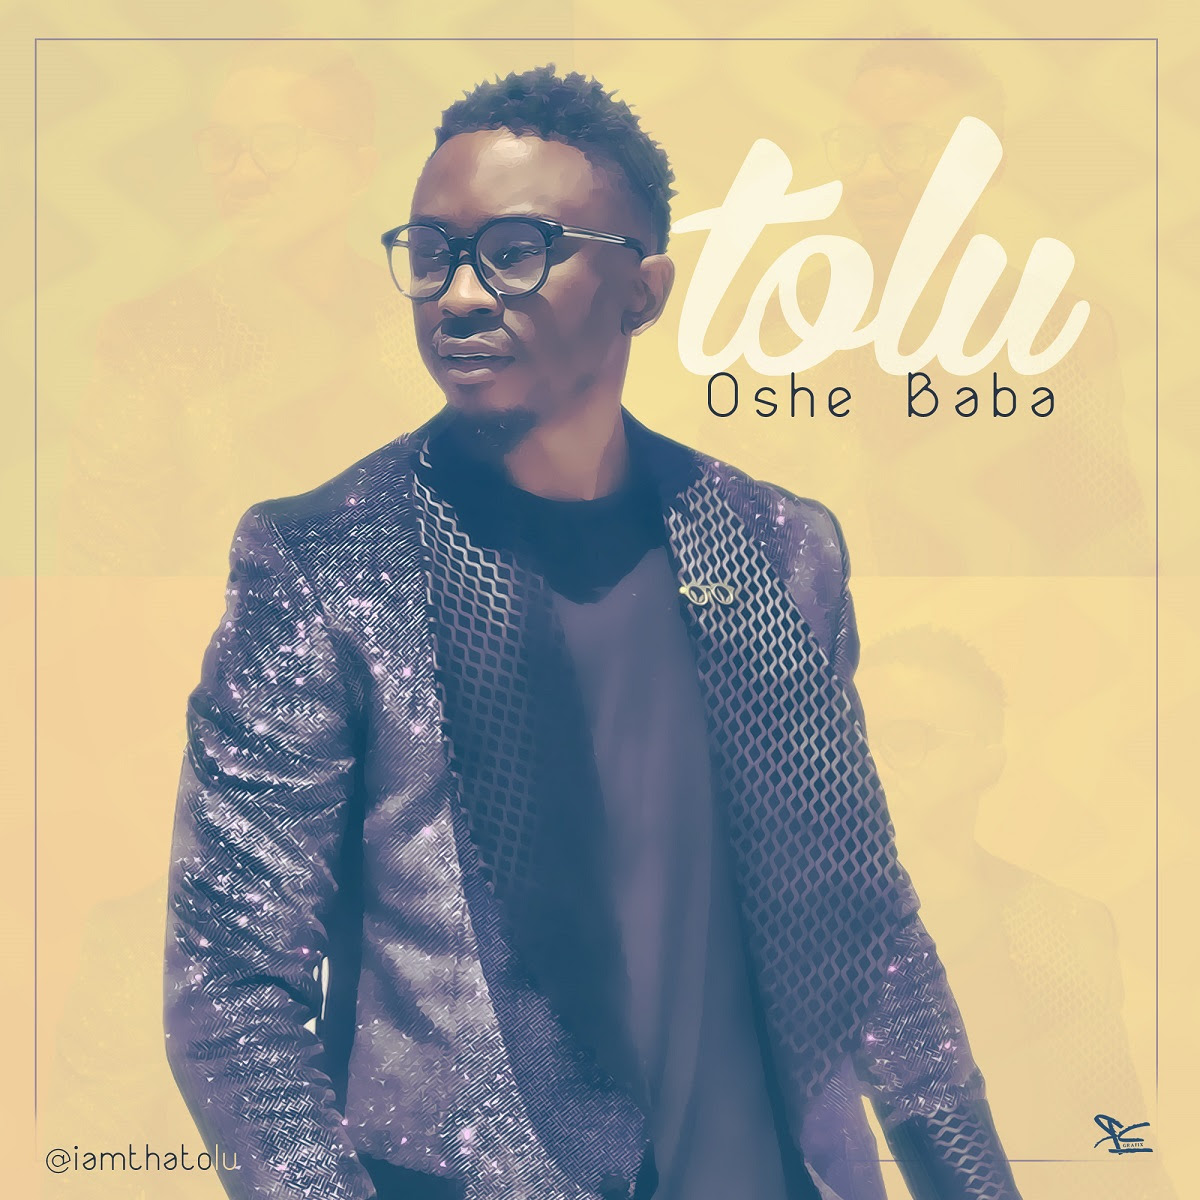 TOLU%20oshe%20baba%20%28small%20size%29 Tolu (Project Fame) turns to Gospel, releases Oshe Baba